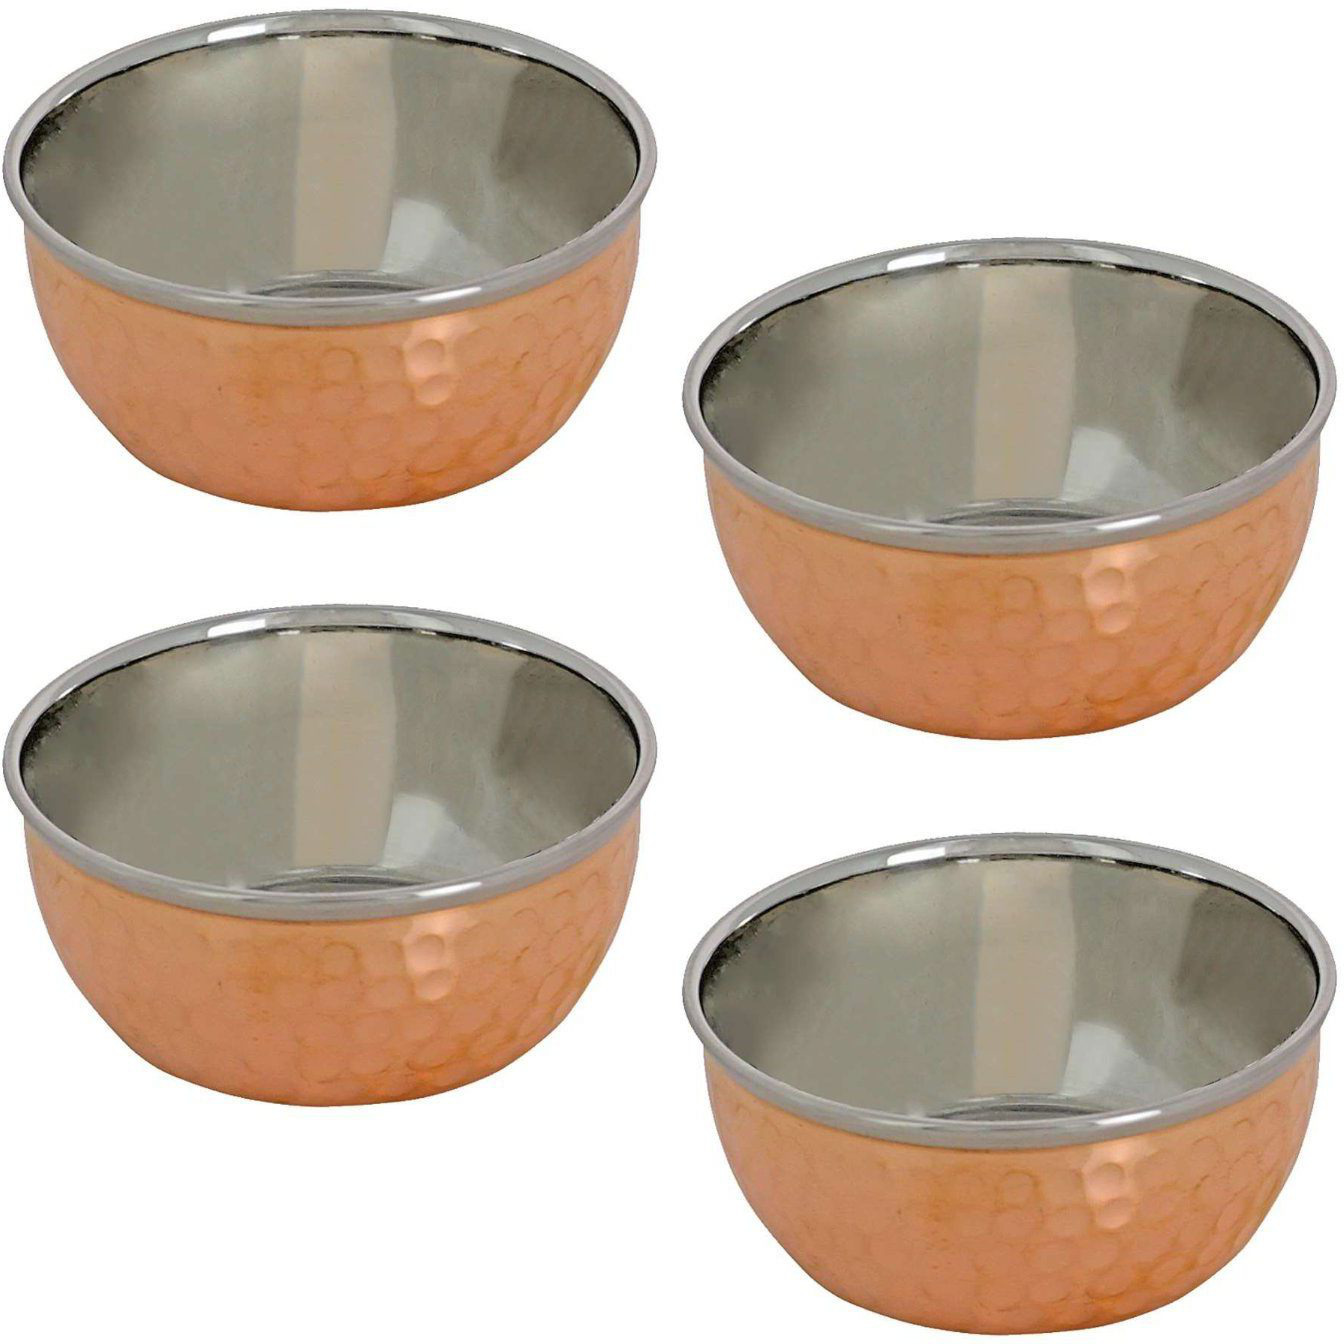 Prisha India Craft B. Set of 3 Dinnerware Traditional Stainless Steel Copper Dinner Set of Thali Plate, Bowls, Glass and Spoons, Dia 13  With 1 Pure Copper Pitcher Jug - Christmas Gift